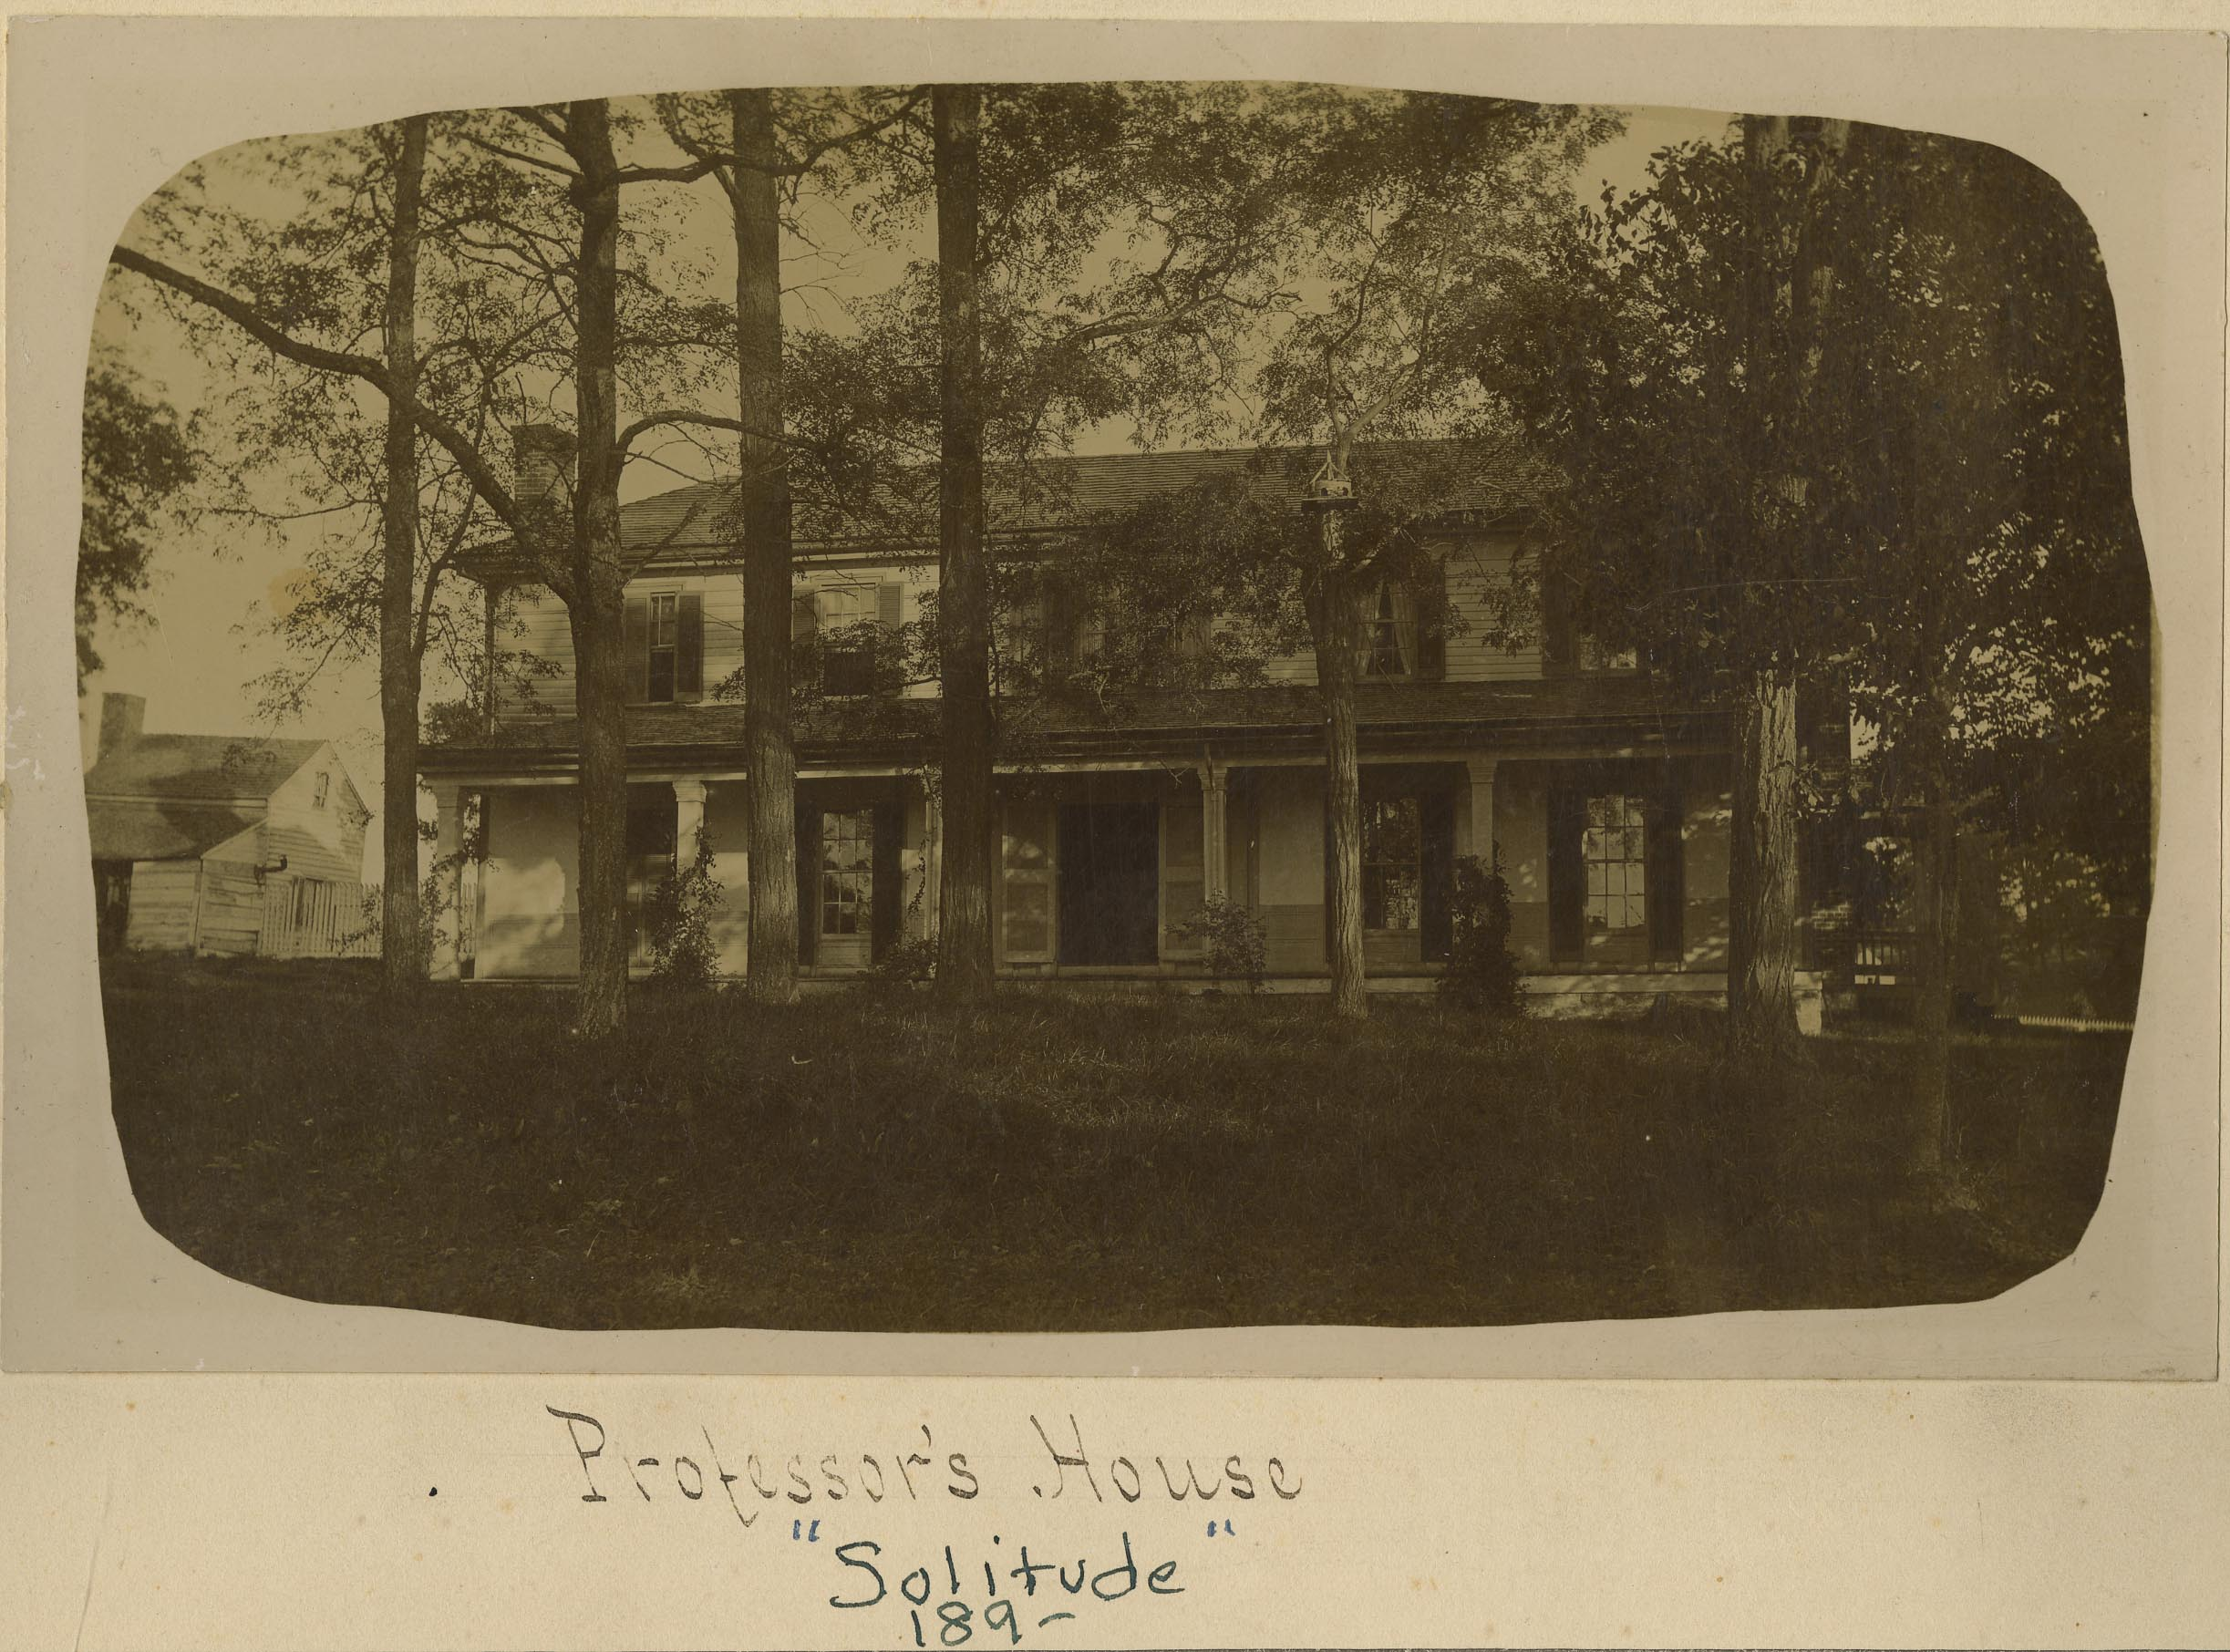 Solitude, 1890s, then a private residence.